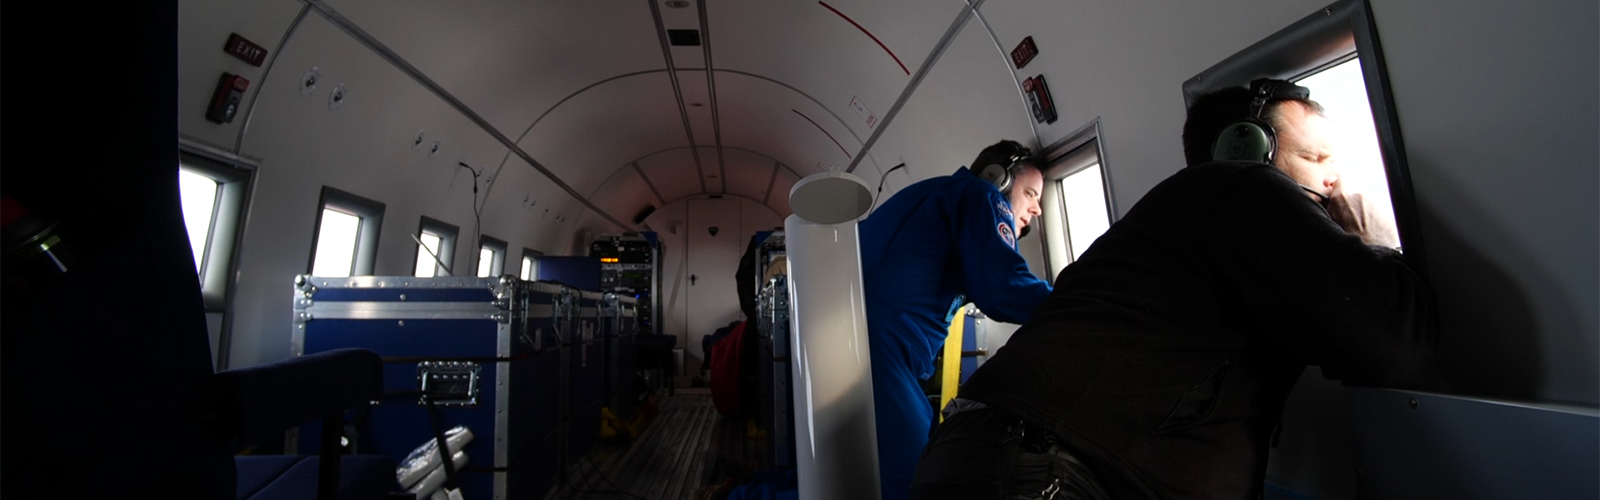 slide 3 - Finding open water in Greenland's icy seas